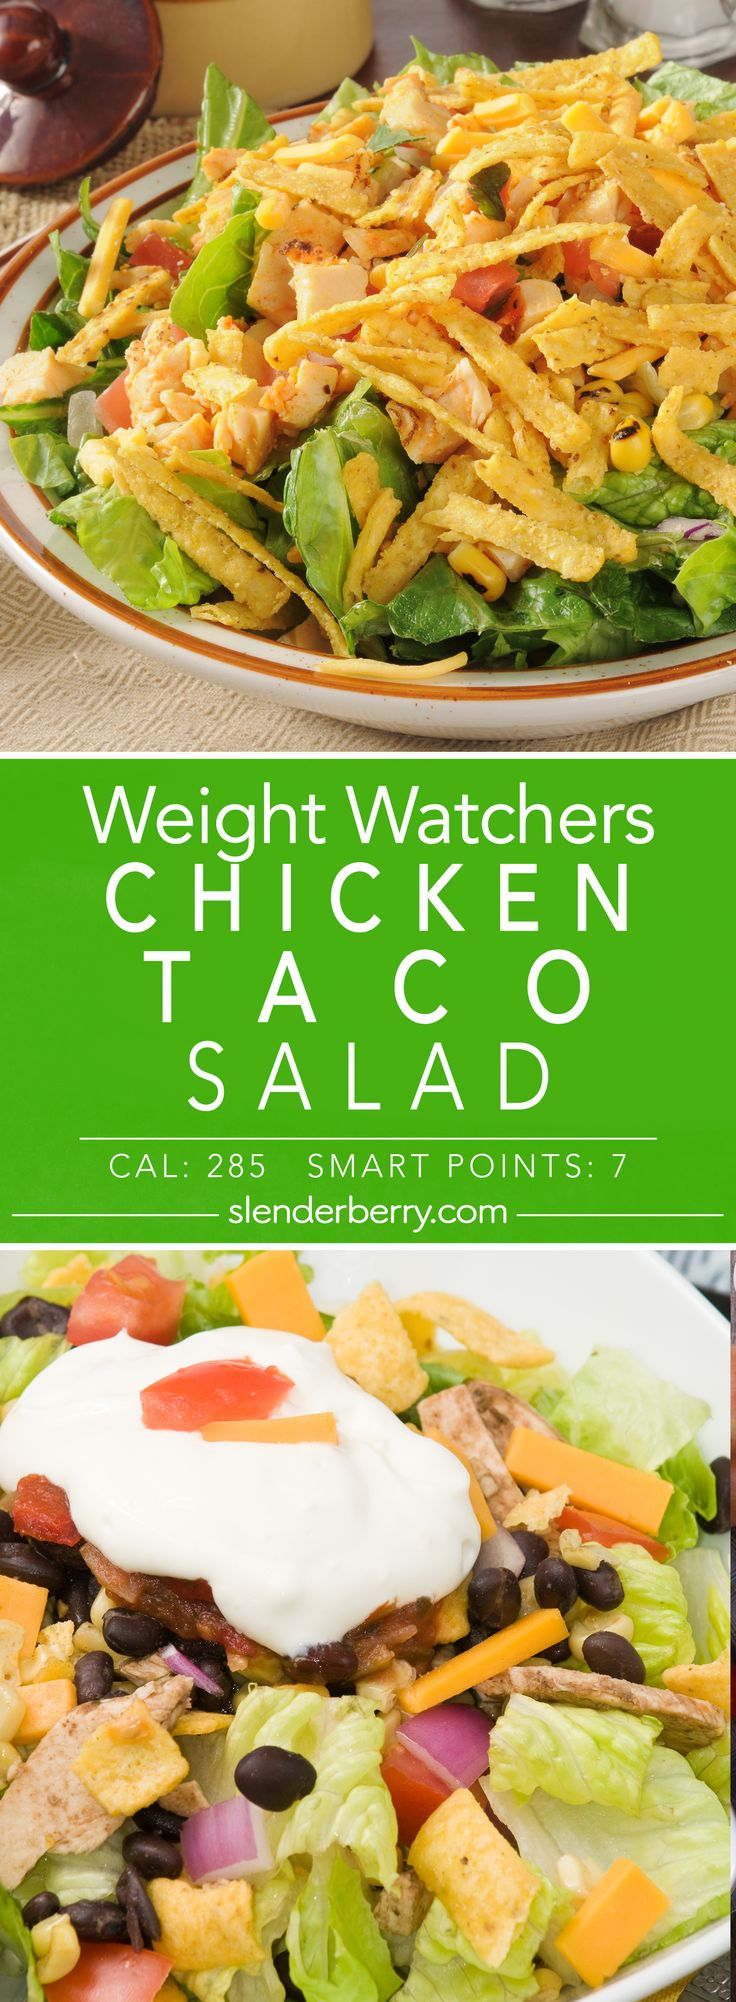 Weight Watchers Chicken Taco Salad Recipe - 7 Smart Points 285 Calories